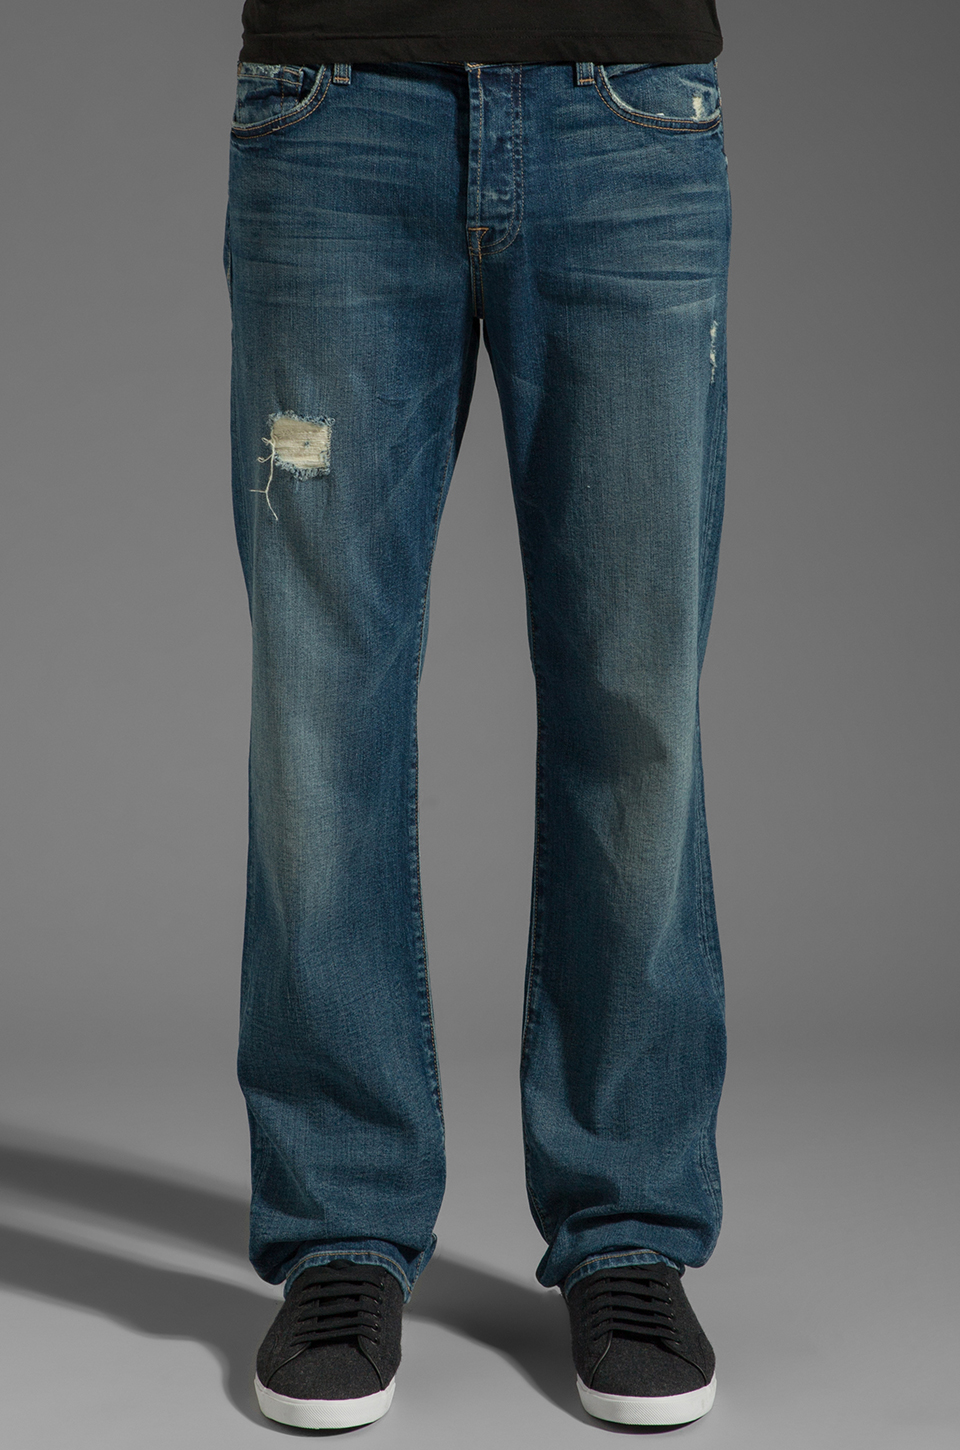 7 For All Mankind The Standard in Ocean Mist